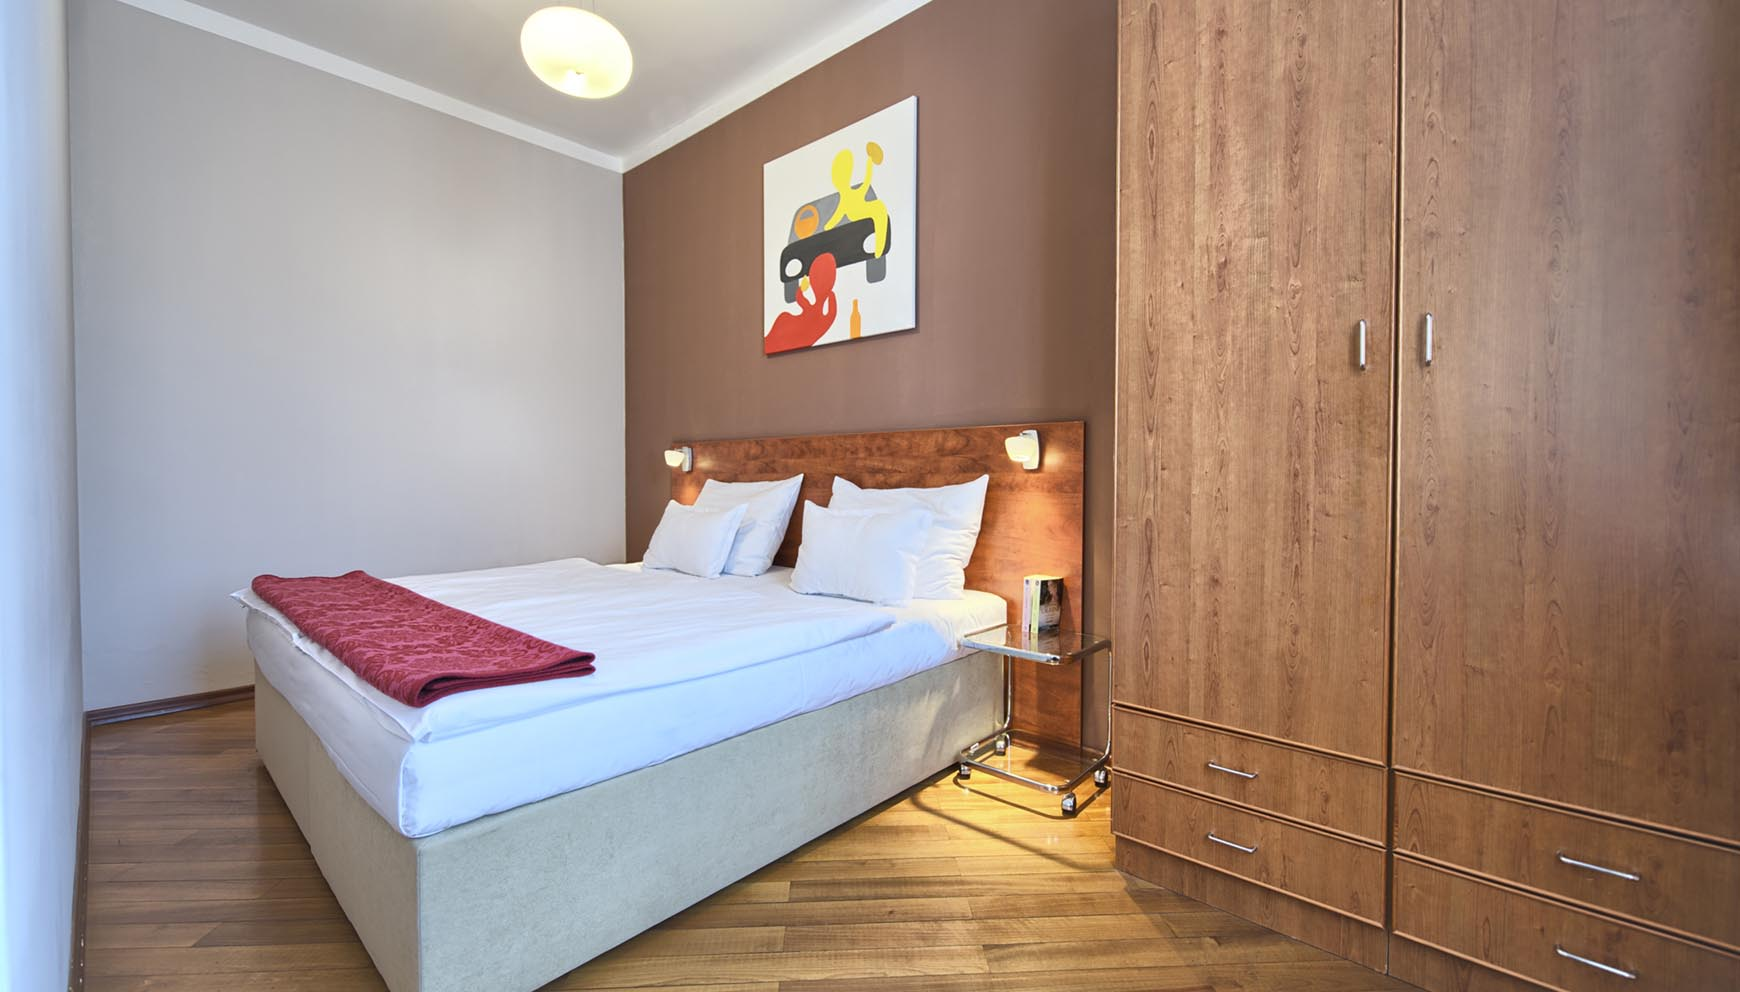 Residence Masna studio apartment type 1 bedroom